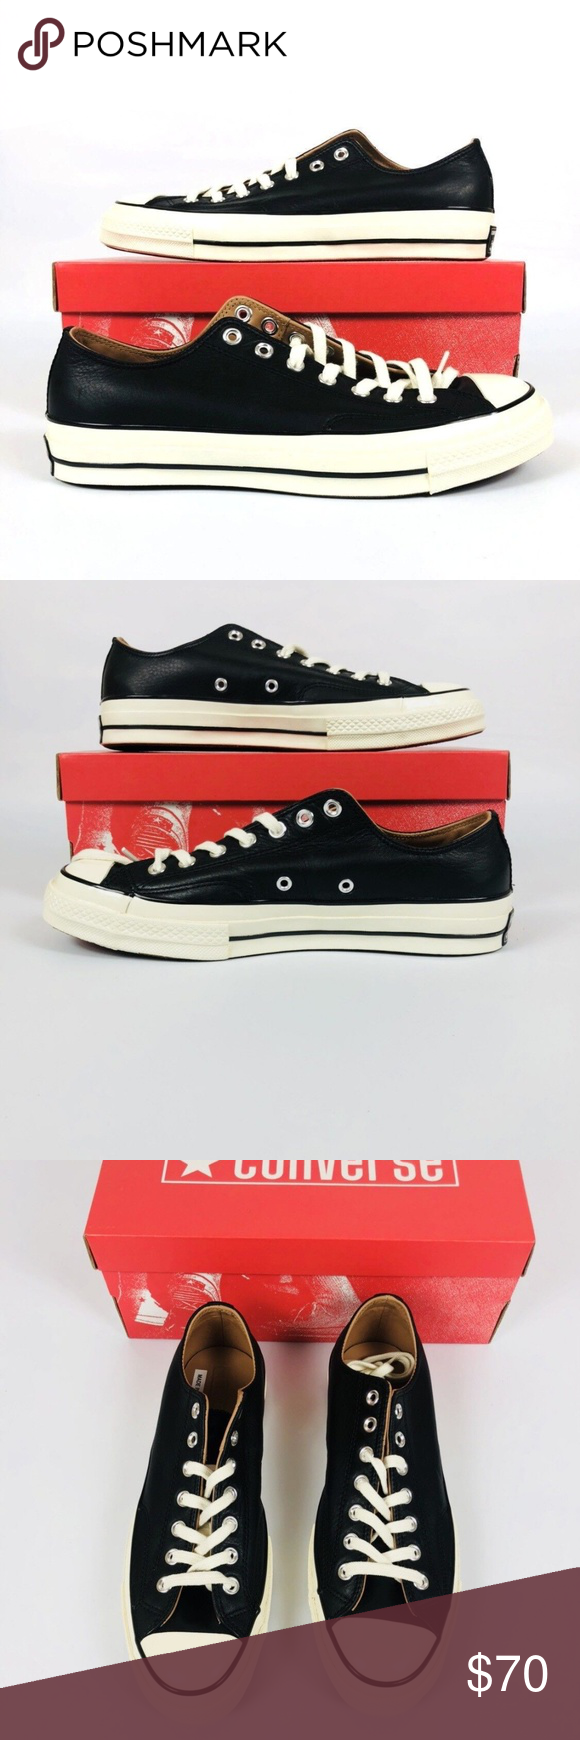 e3c88fda6431 CONVERSE ALL STAR CHUCK TAYLOR CTAS 70 OX CONVERSE ALL STAR CHUCK TAYLOR  CTAS 70 OX SZ 9.5 BLACK EGRET WHITE 151156C New With Box Shipped Double  Boxed ...